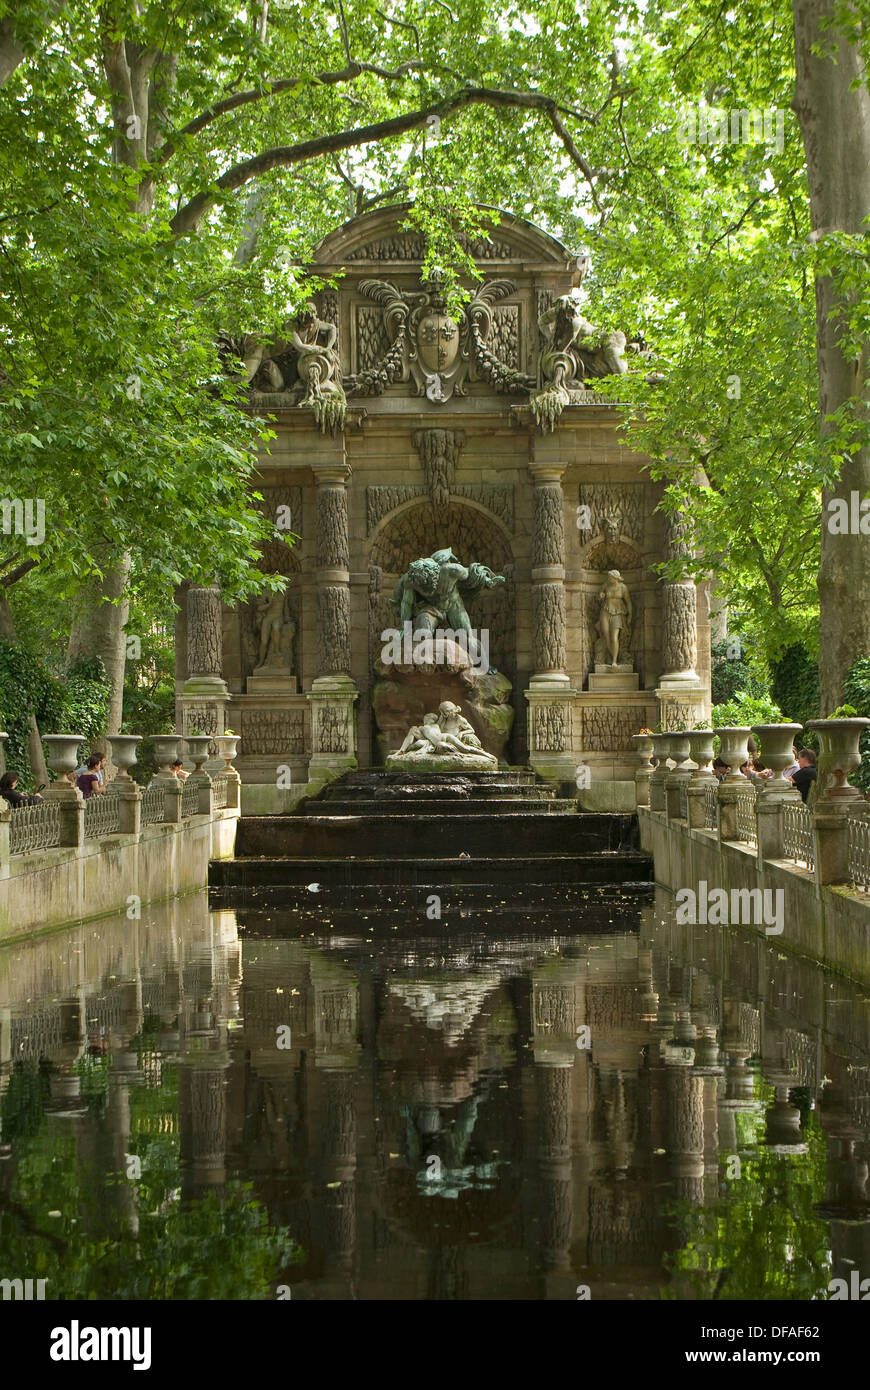 Marie de Medici´s Fountain in the Luxembourg Gardens, Paris, France - Stock Image